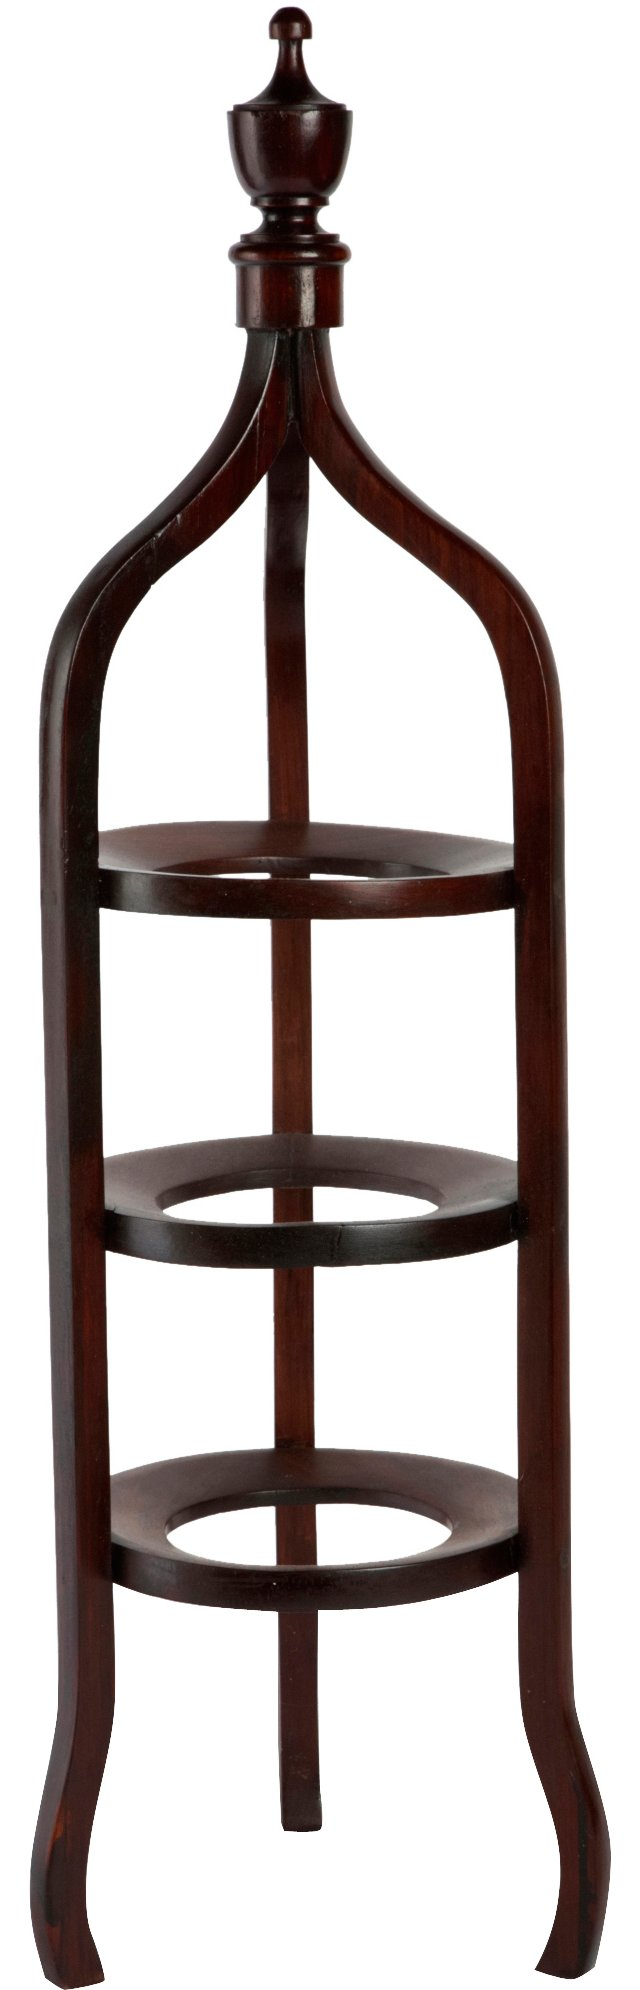 Rosewood Cake Stand